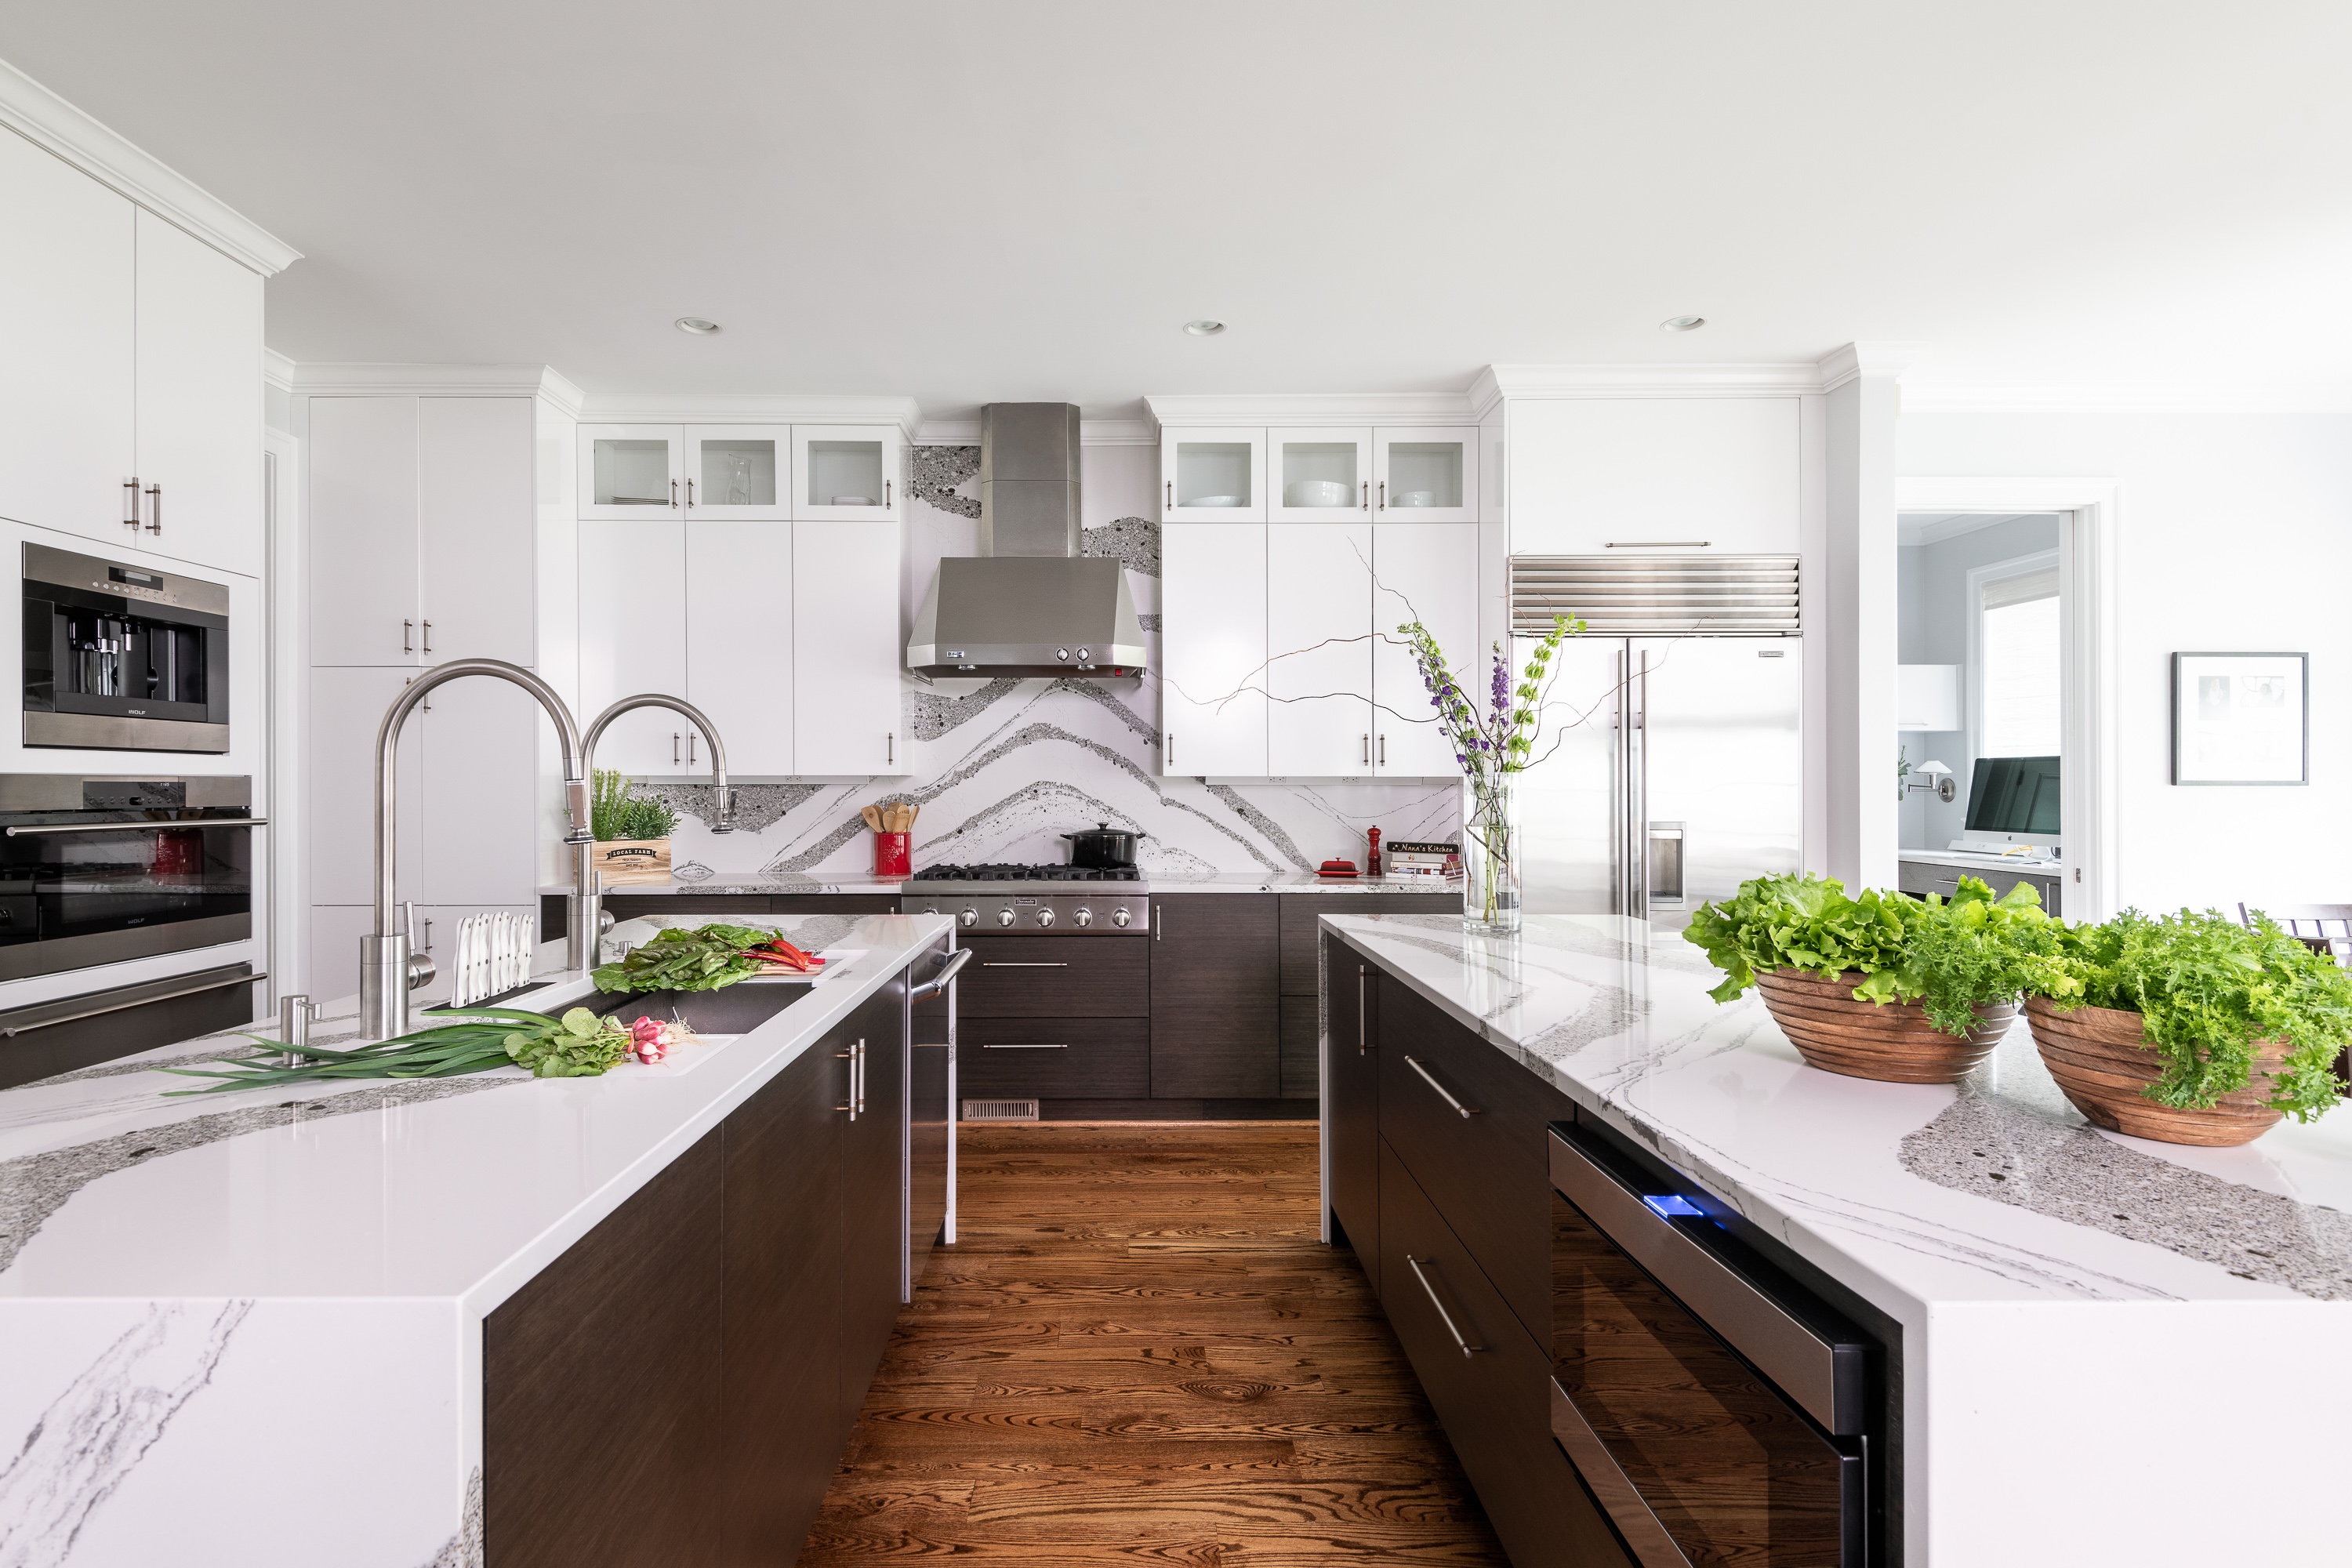 Apa Itu Pantry What Is A Gourmet Kitchen Case Design Remodeling Md Dc Nova